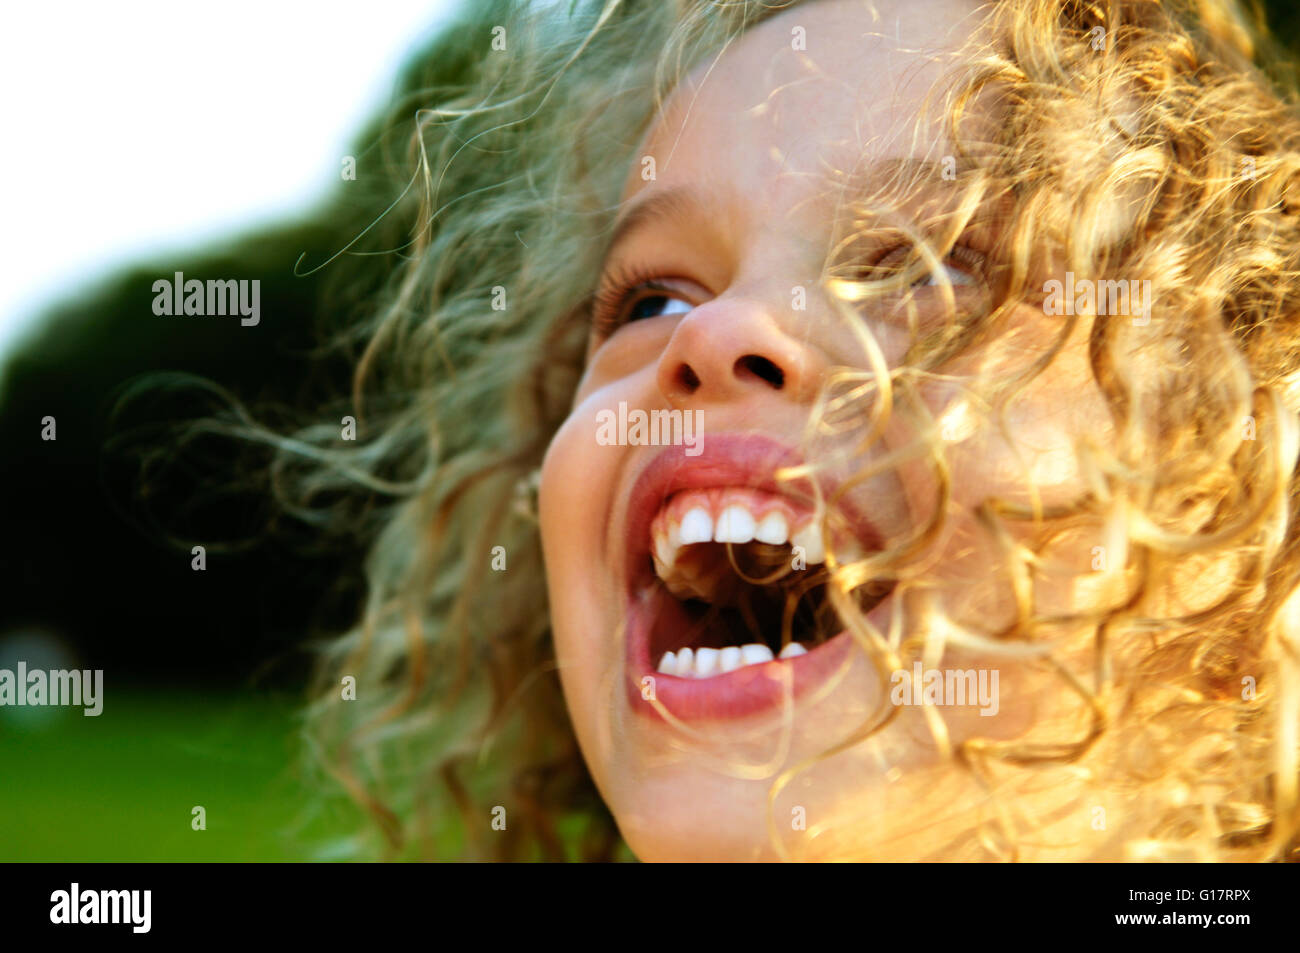 Close up of blond curly haired girl laughing - Stock Image